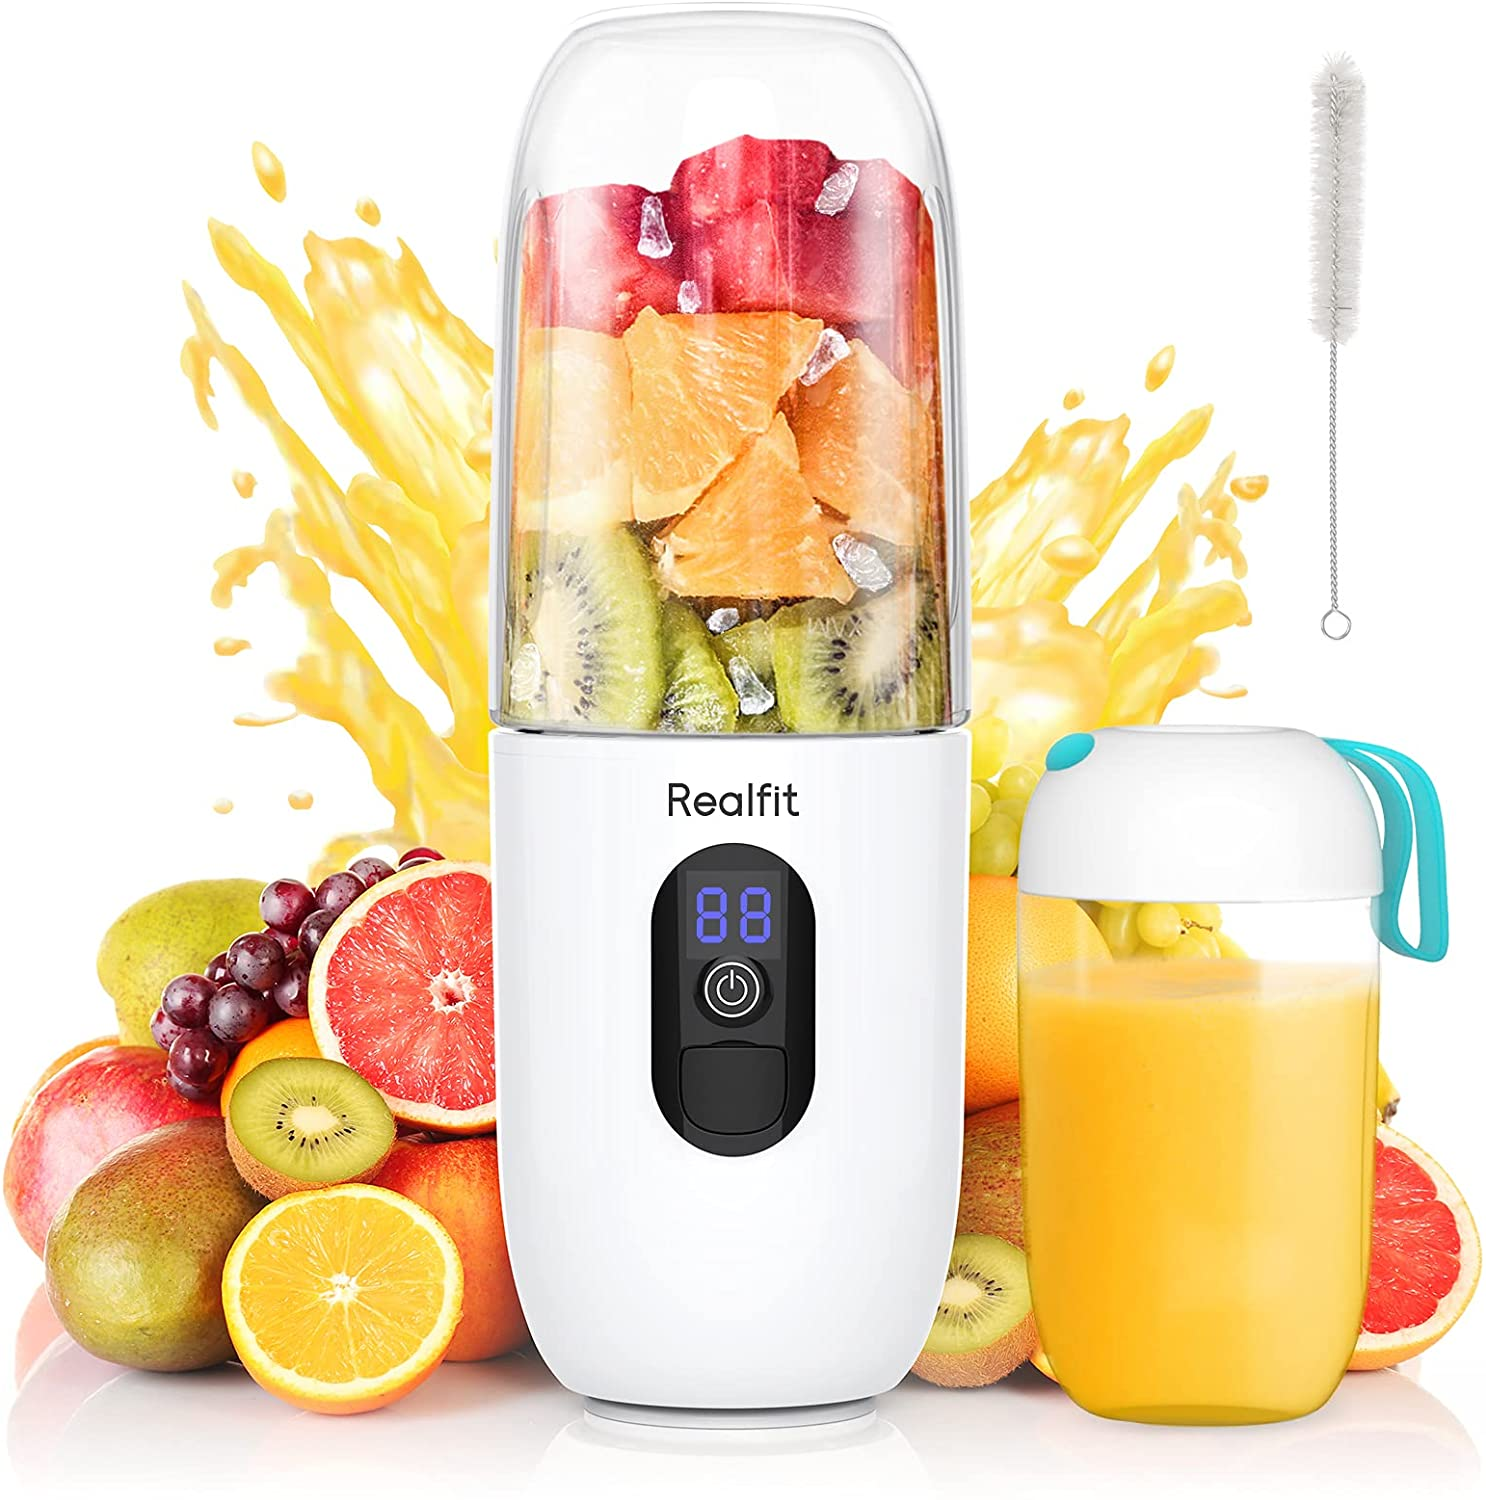 Portable Mixer Blender - Realfit Mini Portable Blender Bottles with 25000 rpm Six Blades for Milkshakes and Baby Food, 17.2 Oz Wireless USB Blender for Kitchen and Travel